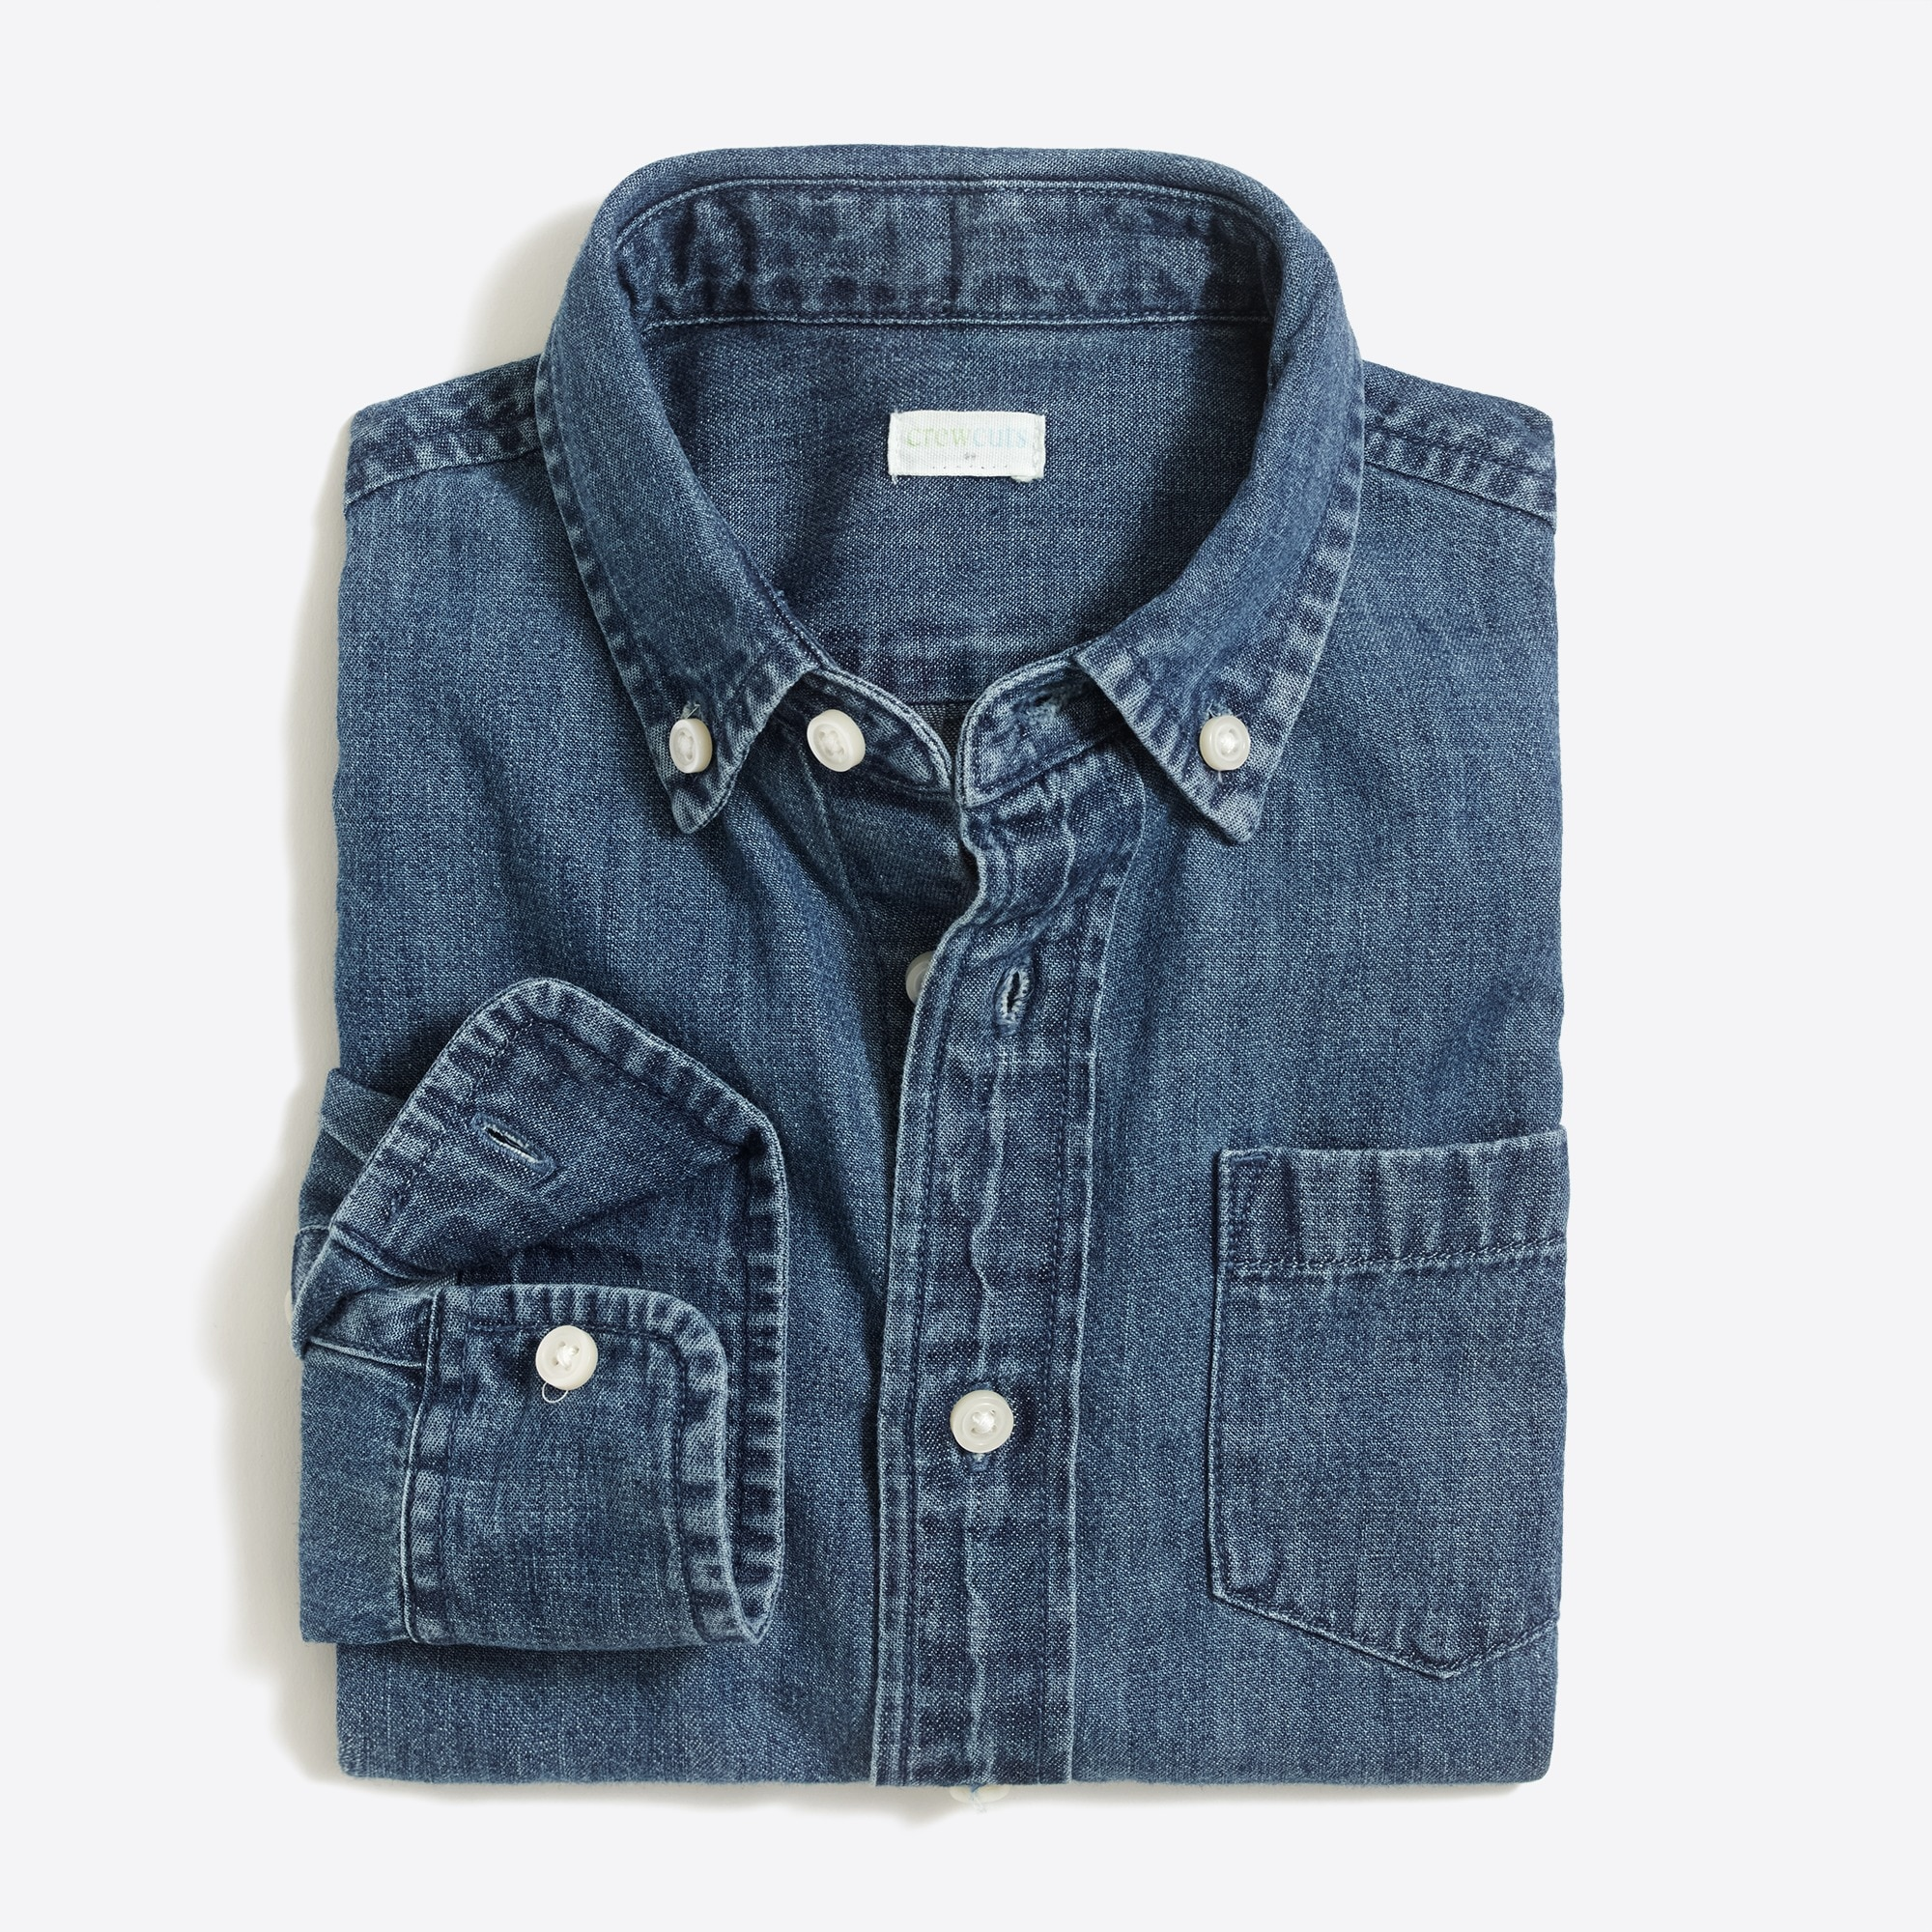 boys' long-sleeve chambray shirt : factoryboys chambray